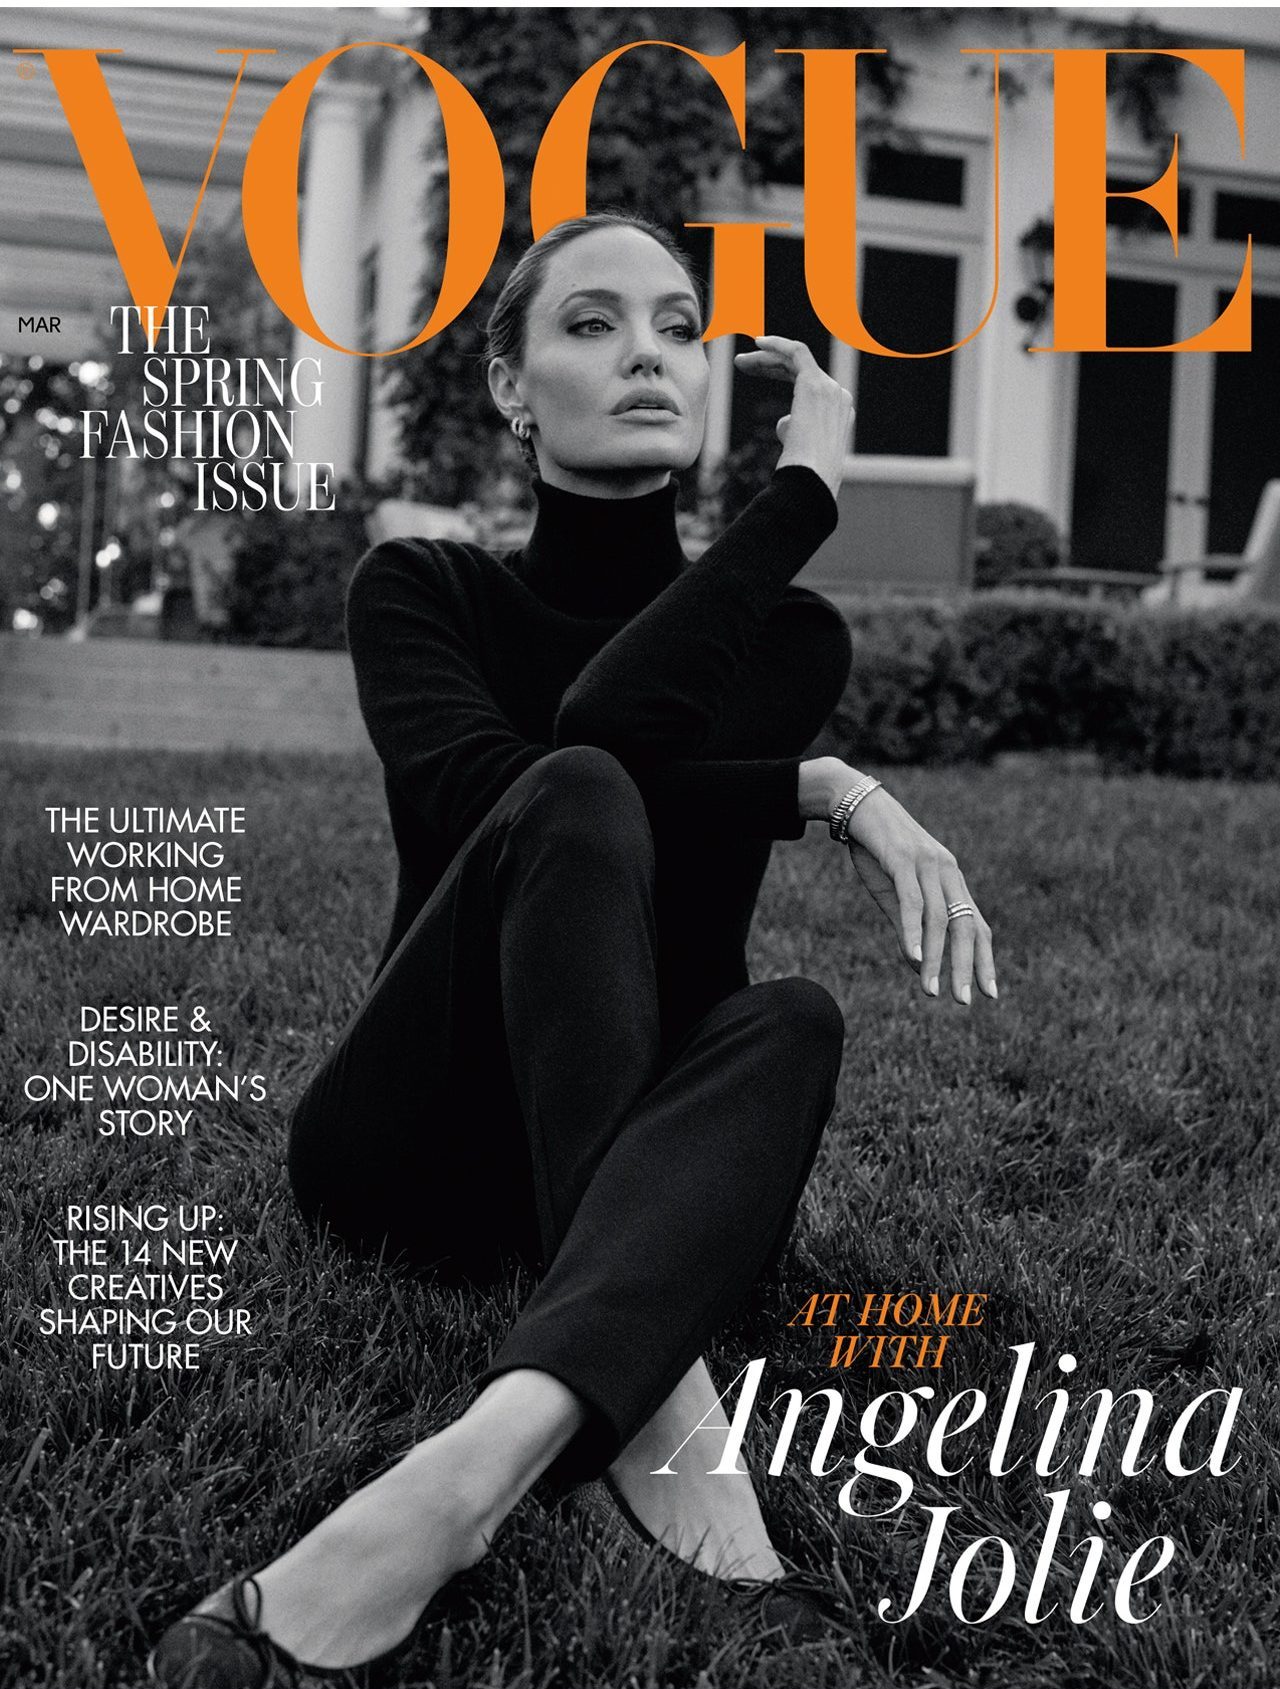 AT HOME WITH ANGELINA JOLIE